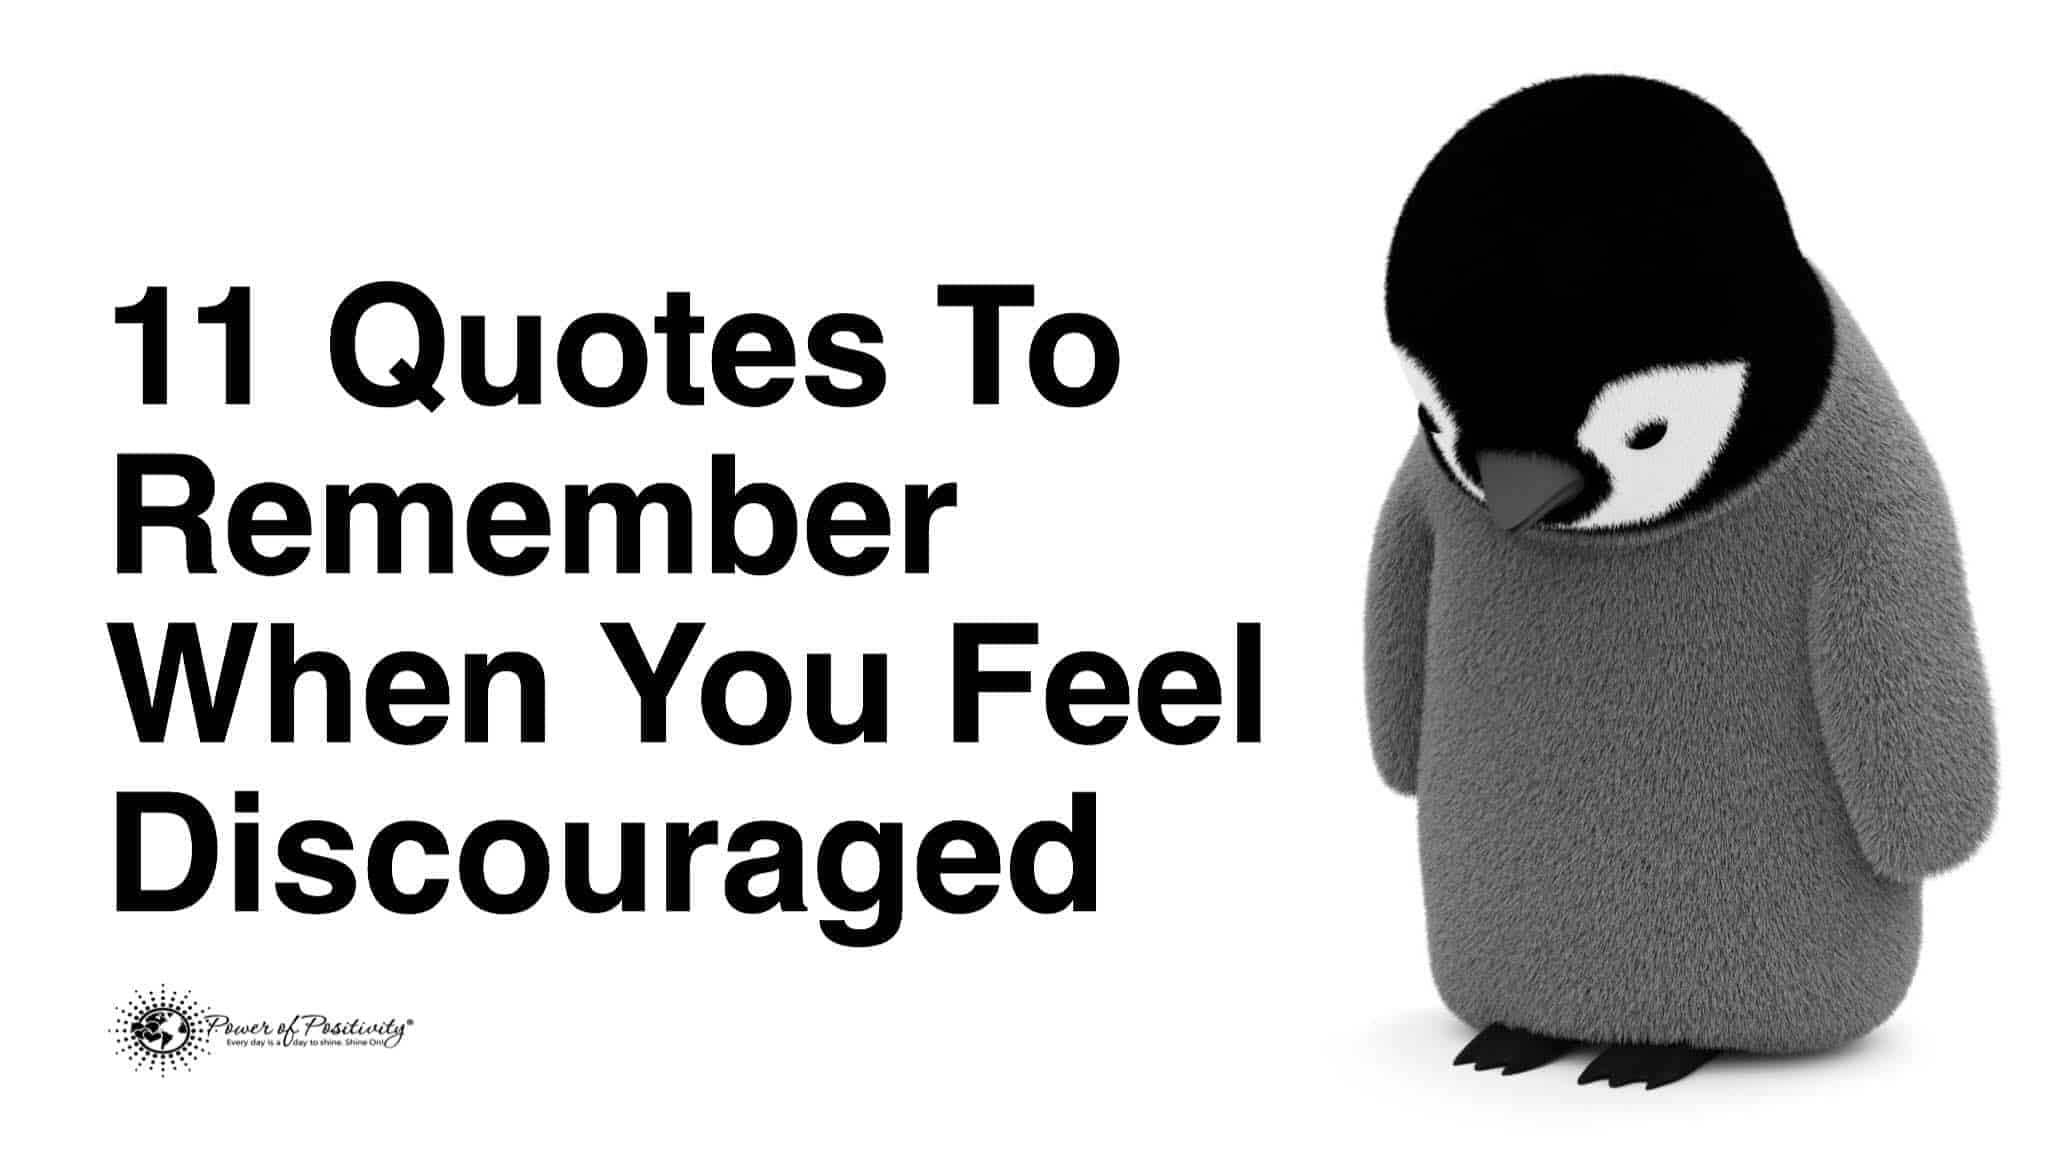 Throwing In The Towel Quotes 11 Quotes To Remember When You Feel Discouraged